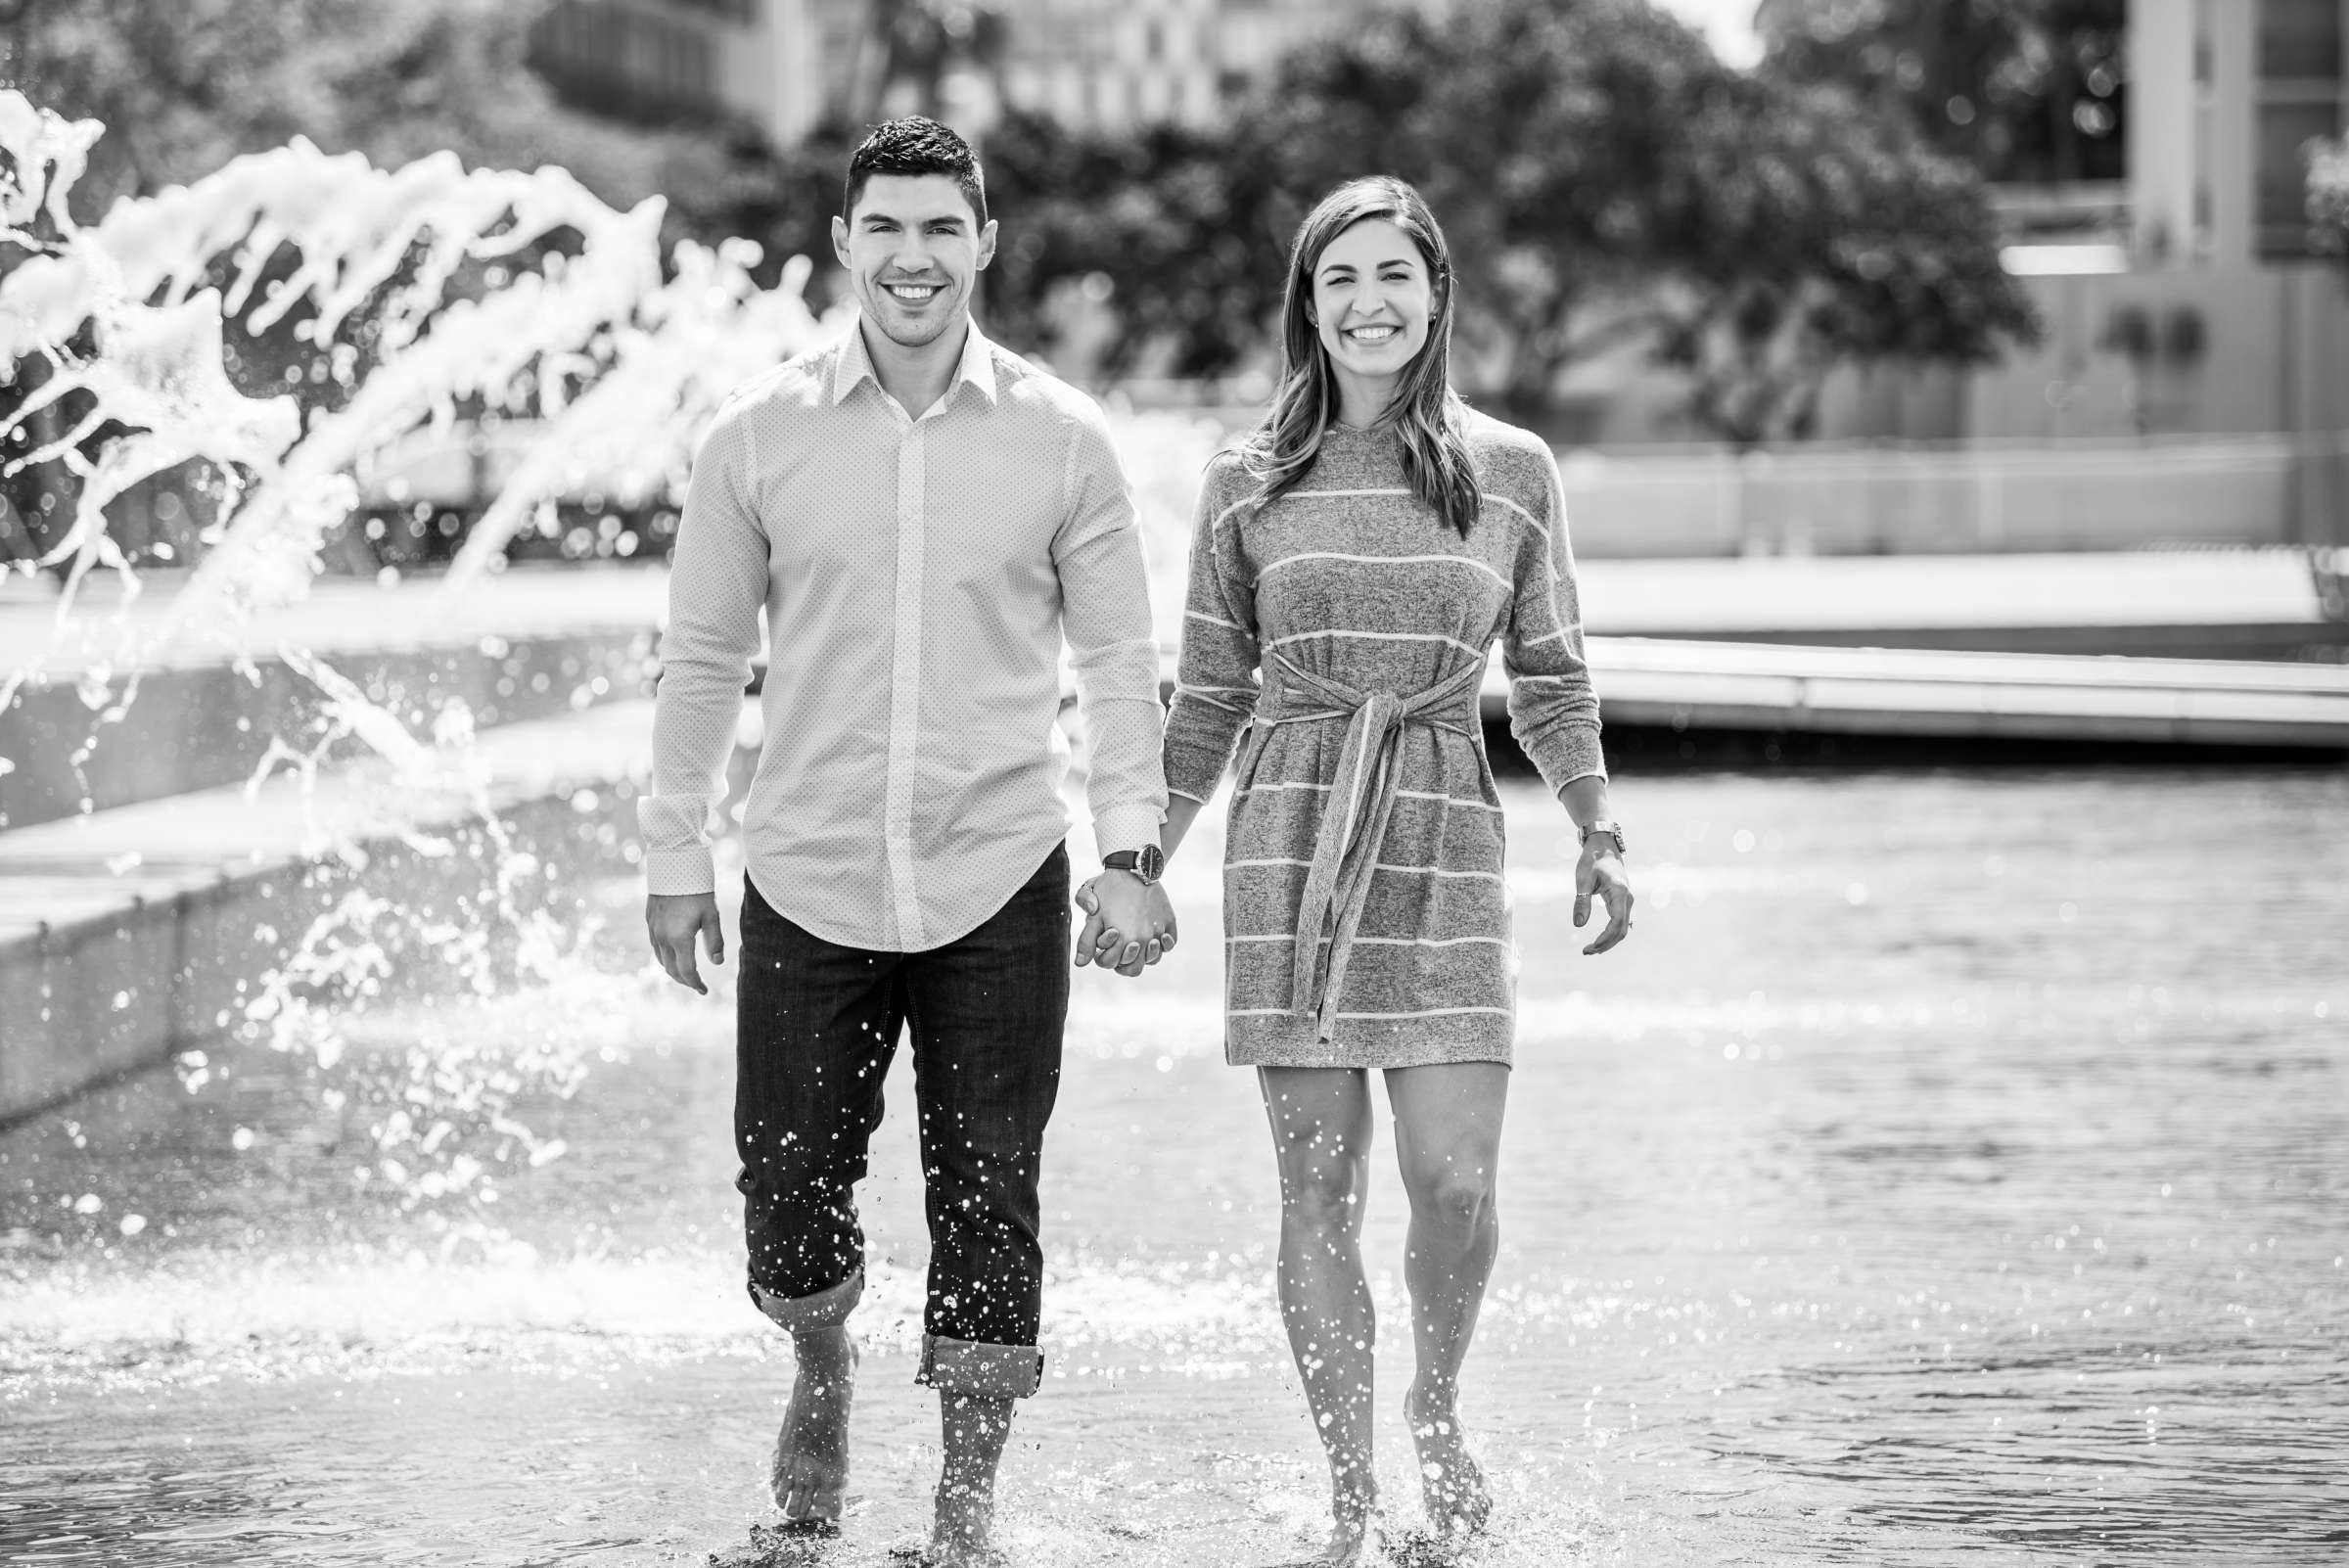 San Diego Courthouse Engagement, Amanda and Stephano Engagement Photo #42 by True Photography